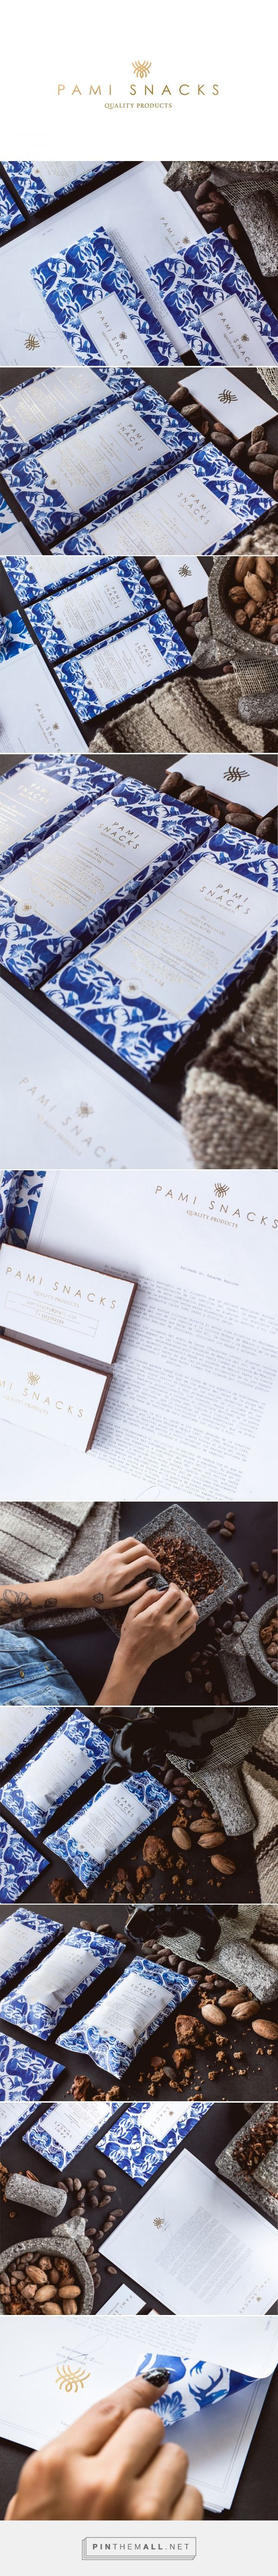 PAMI Snacks Branding and Packaging by Daniel Barba   Fivestar Branding Agency – Design and Branding Agency & Curated Inspiration Gallery